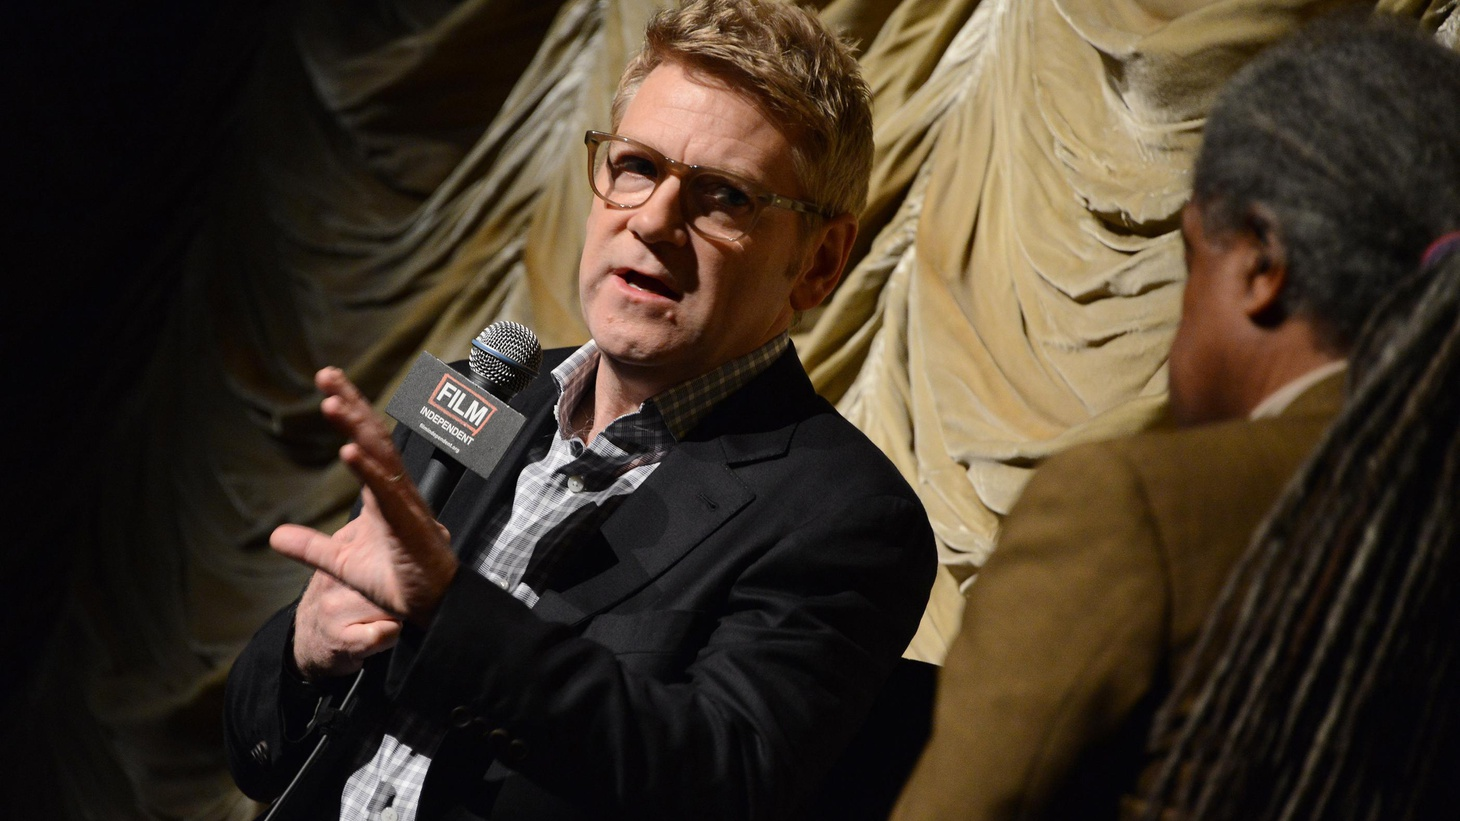 Director Kenneth Branagh talks about why Shakespeare and action movies have more in common than you think.